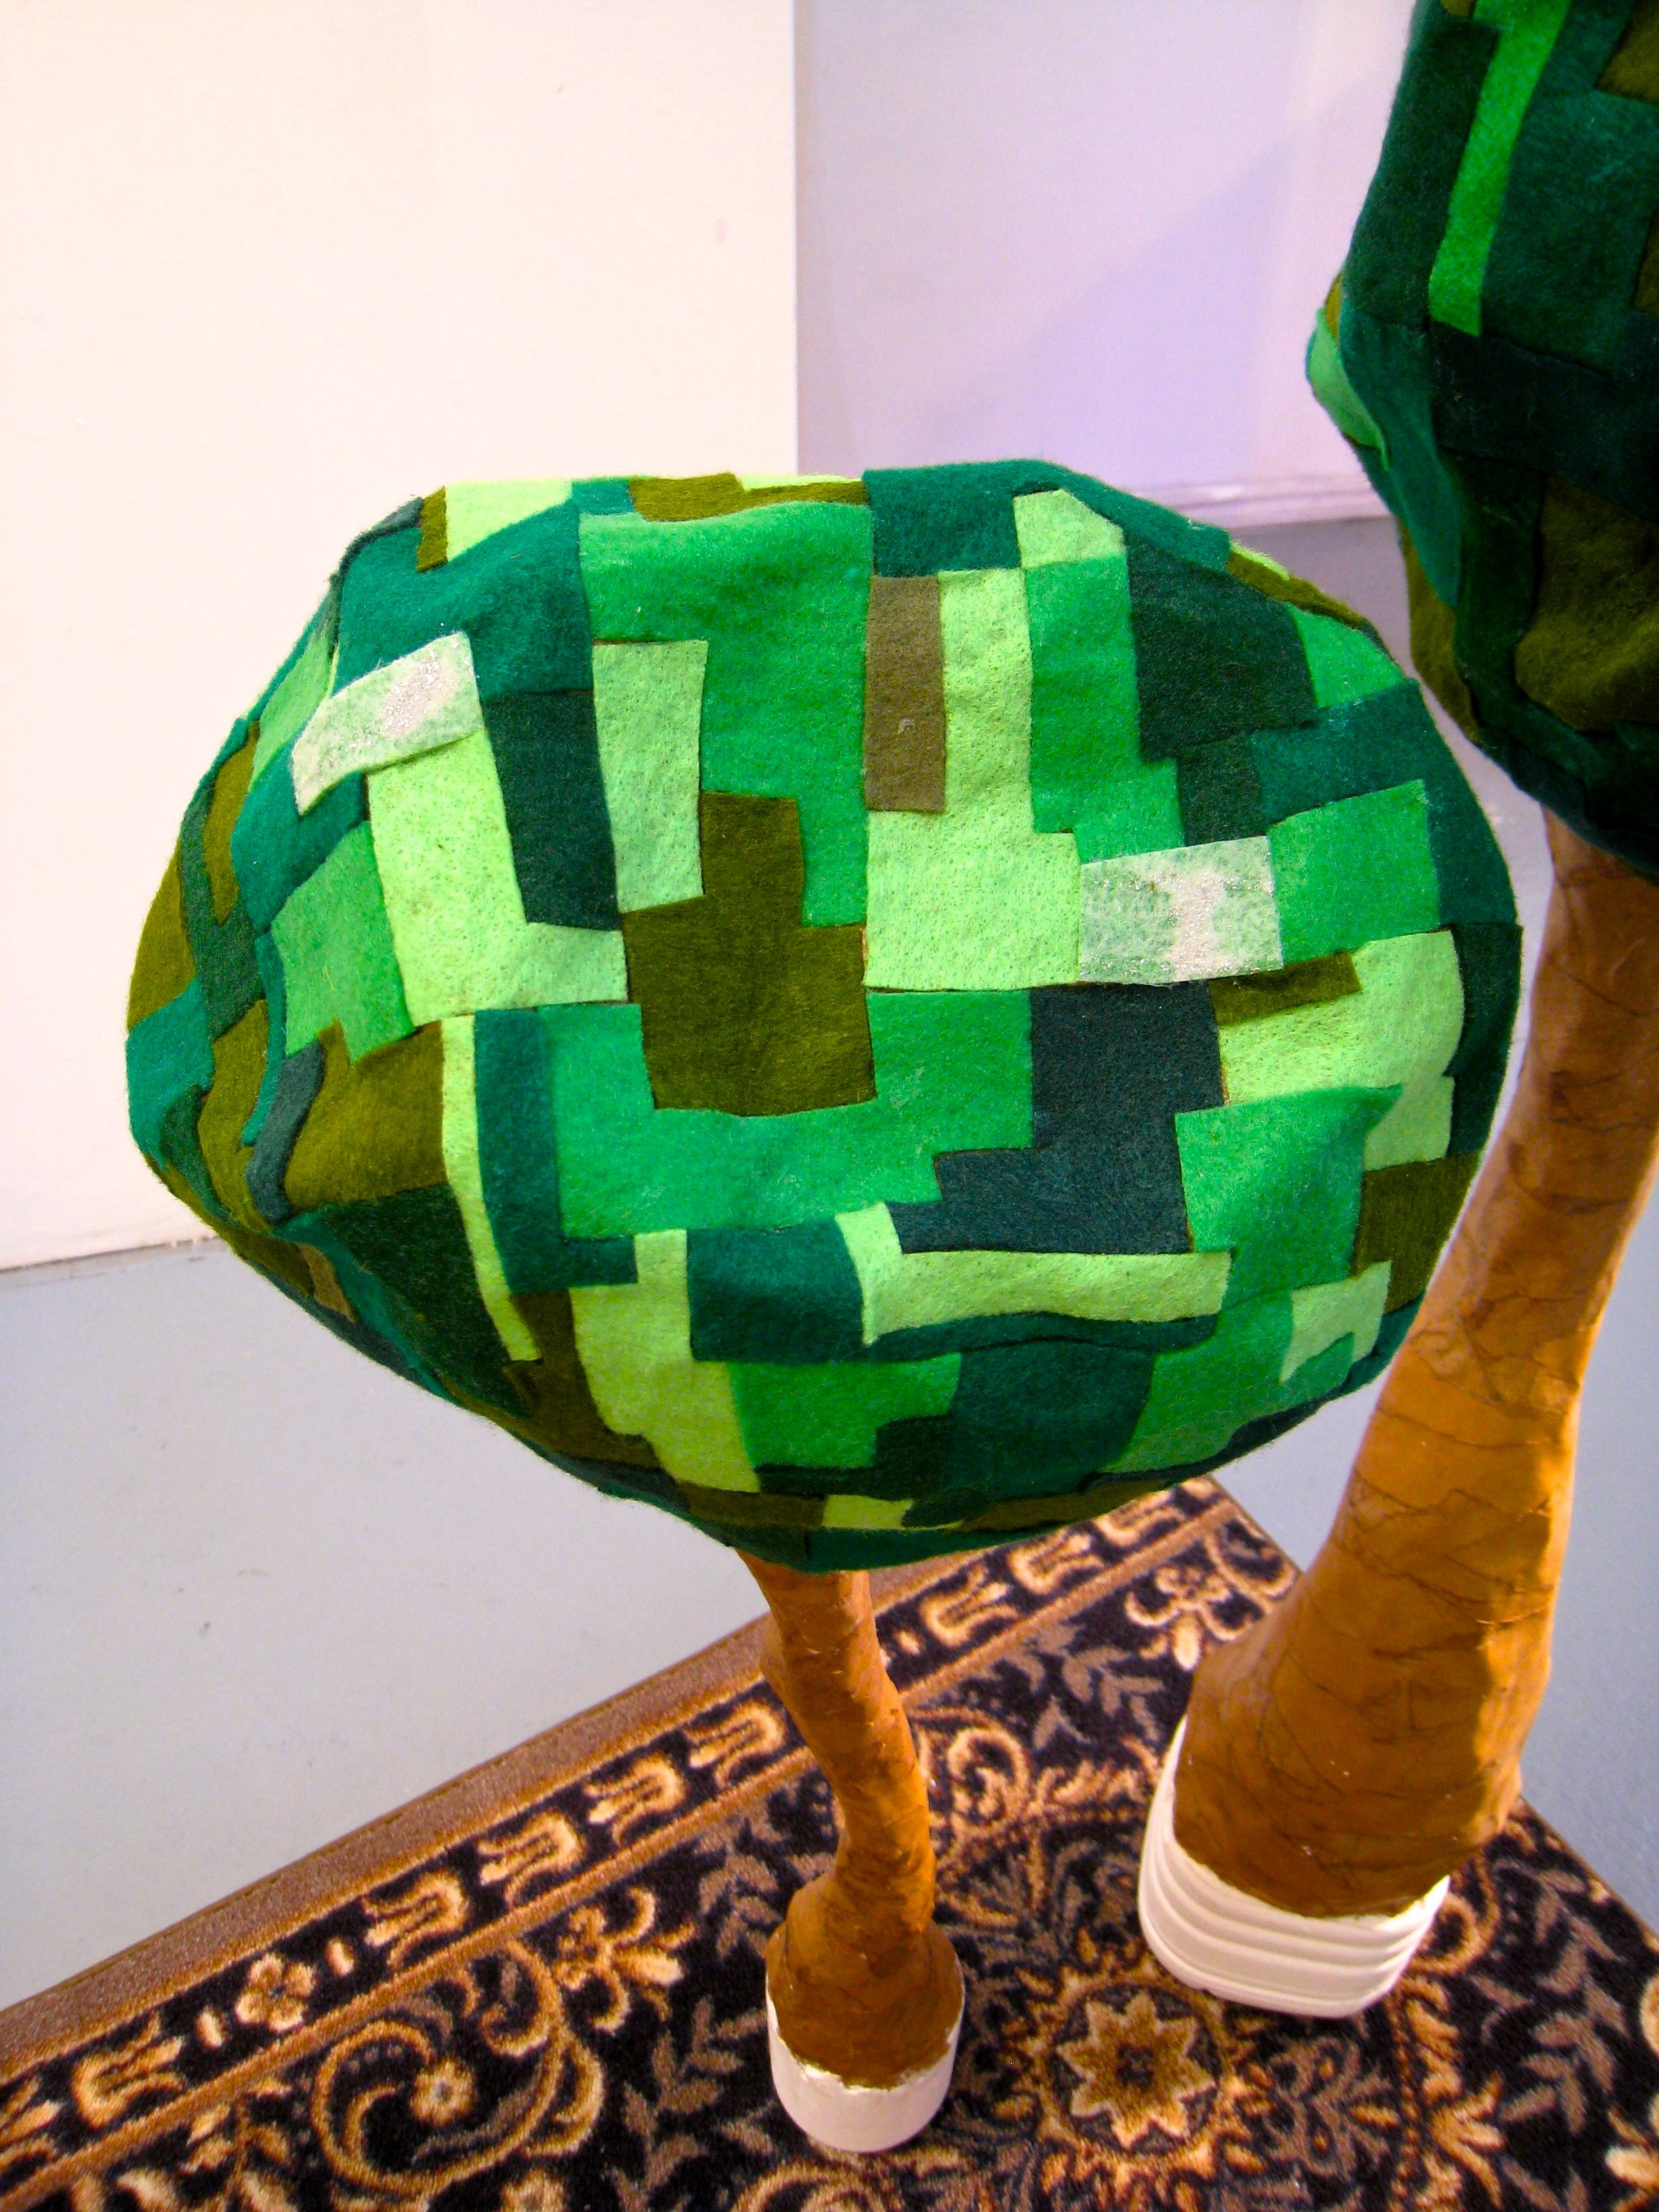 Subliminal Rapture Rug, 2010 detail: felt 'farmland patchwork' trees, paper mache, plaster base